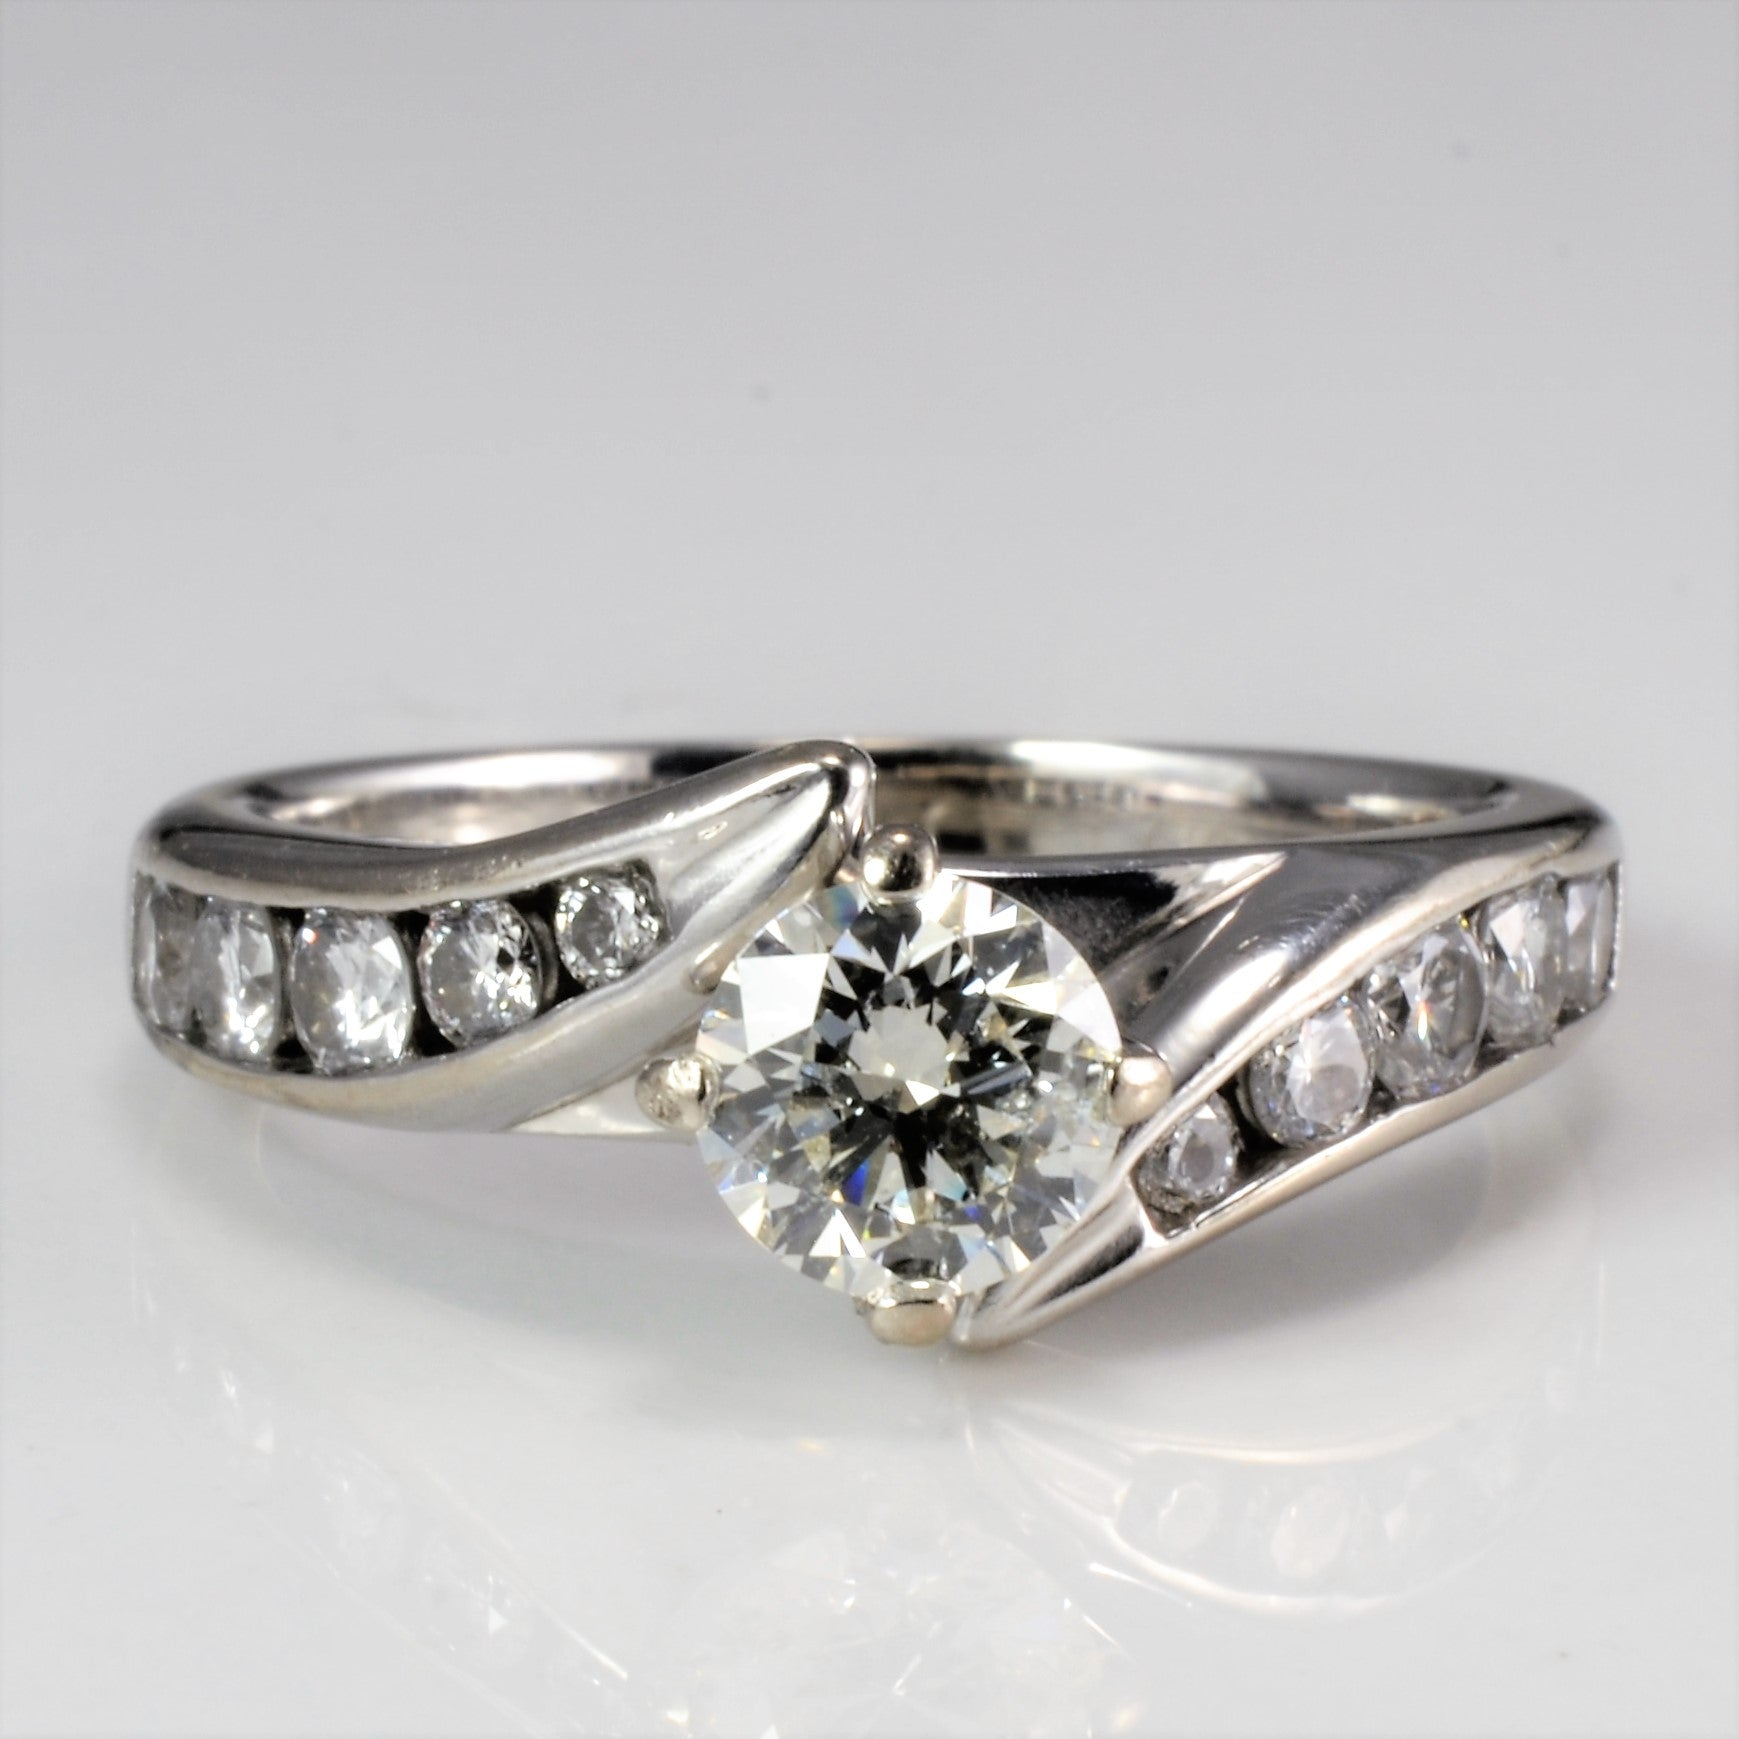 Bypass Diamond Engagement Ring | 0.83 ctw, SZ 5.5 |